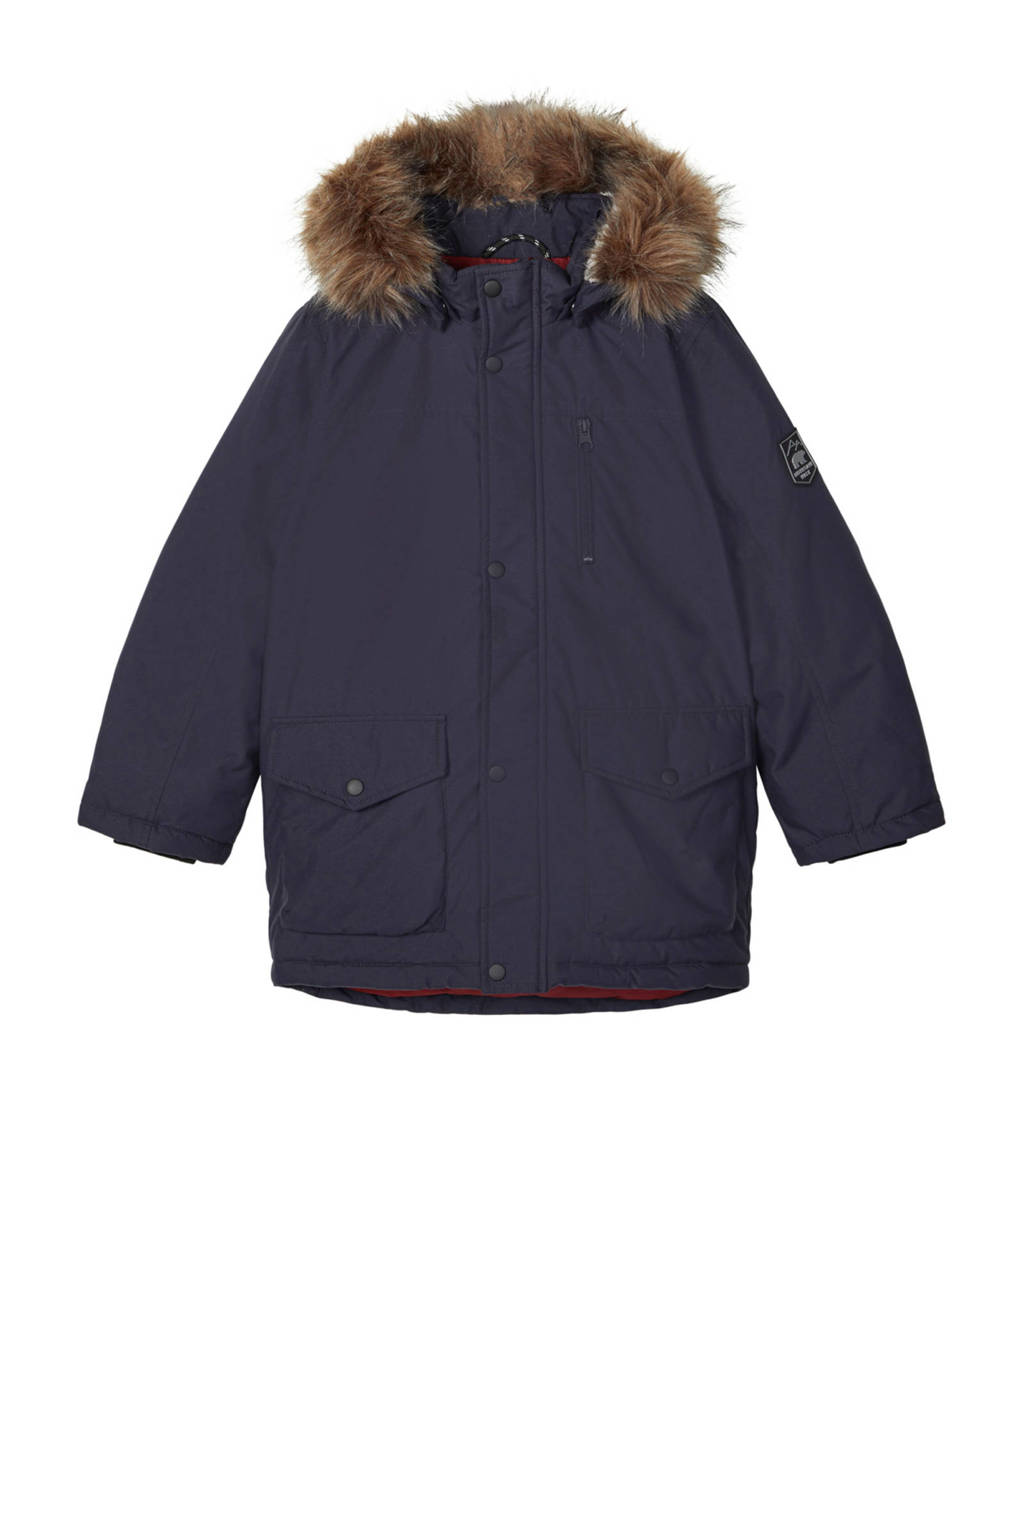 NAME IT KIDS  winterjas Mibis donkerblauw, Donkerblauw